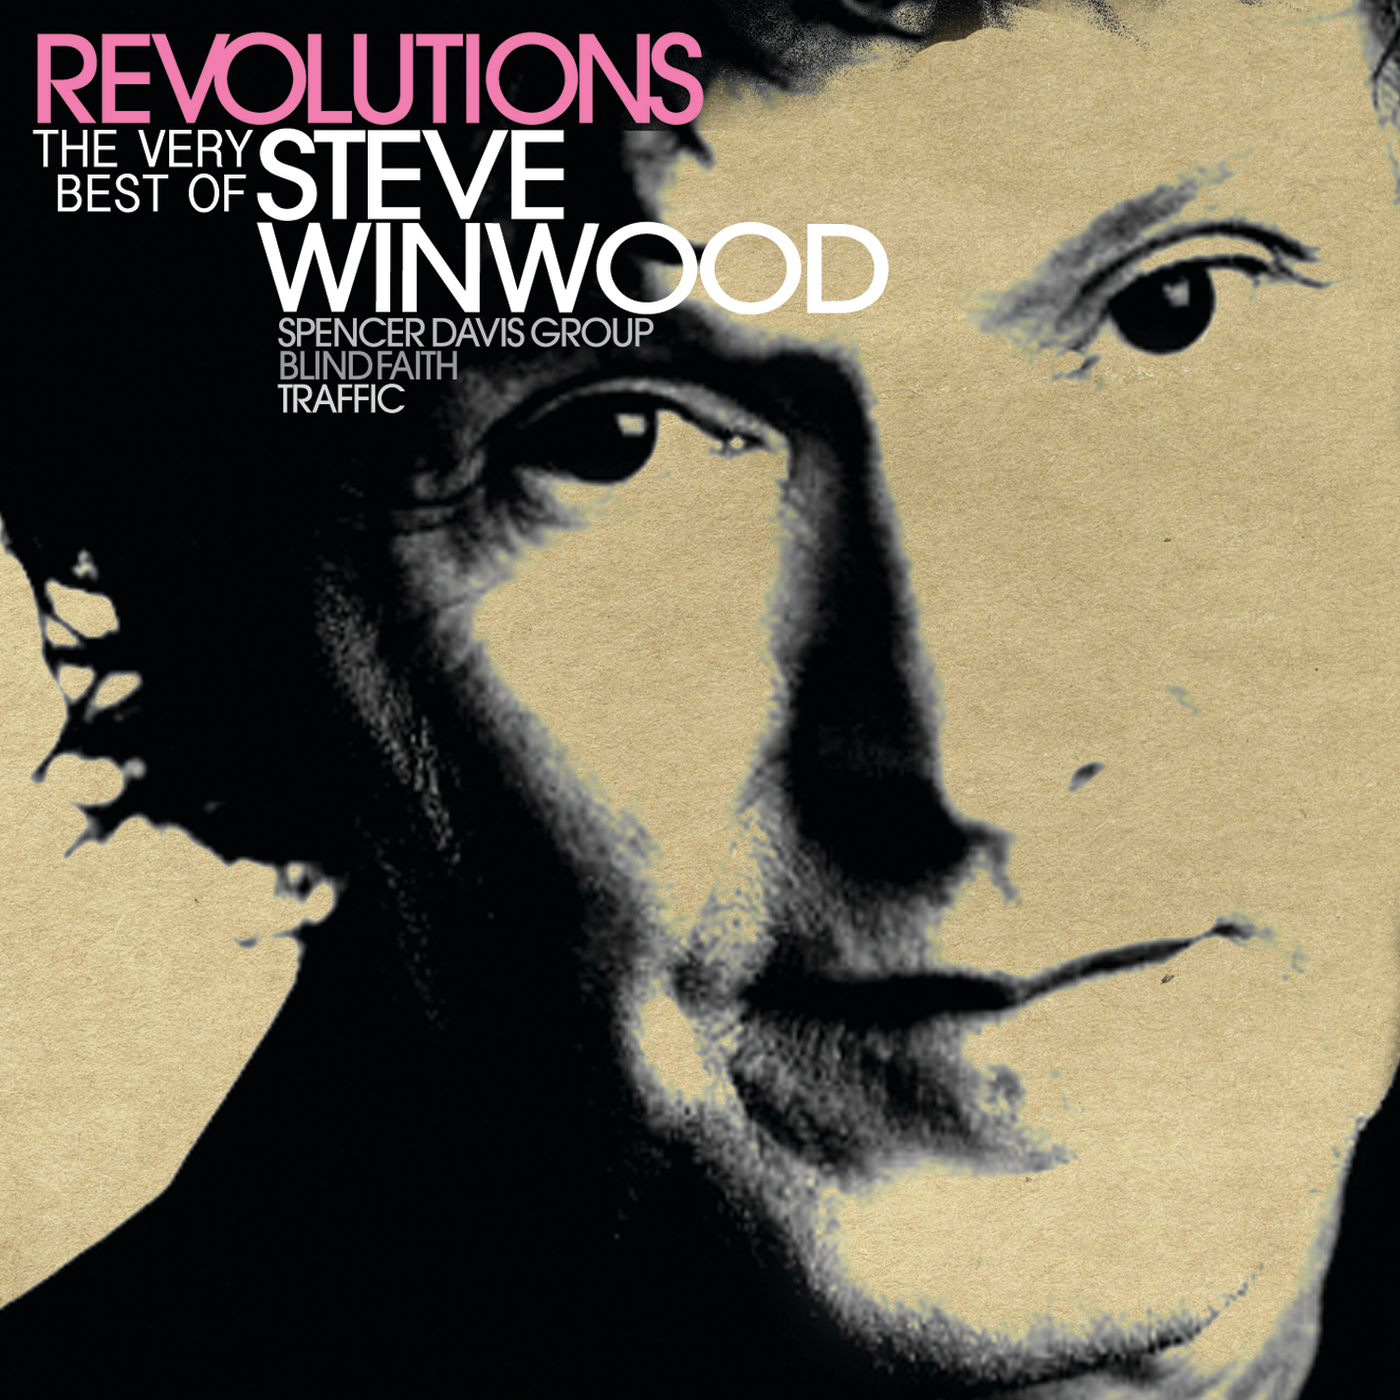 Listen Free To Steve Winwood Higher Love Radio Iheartradio